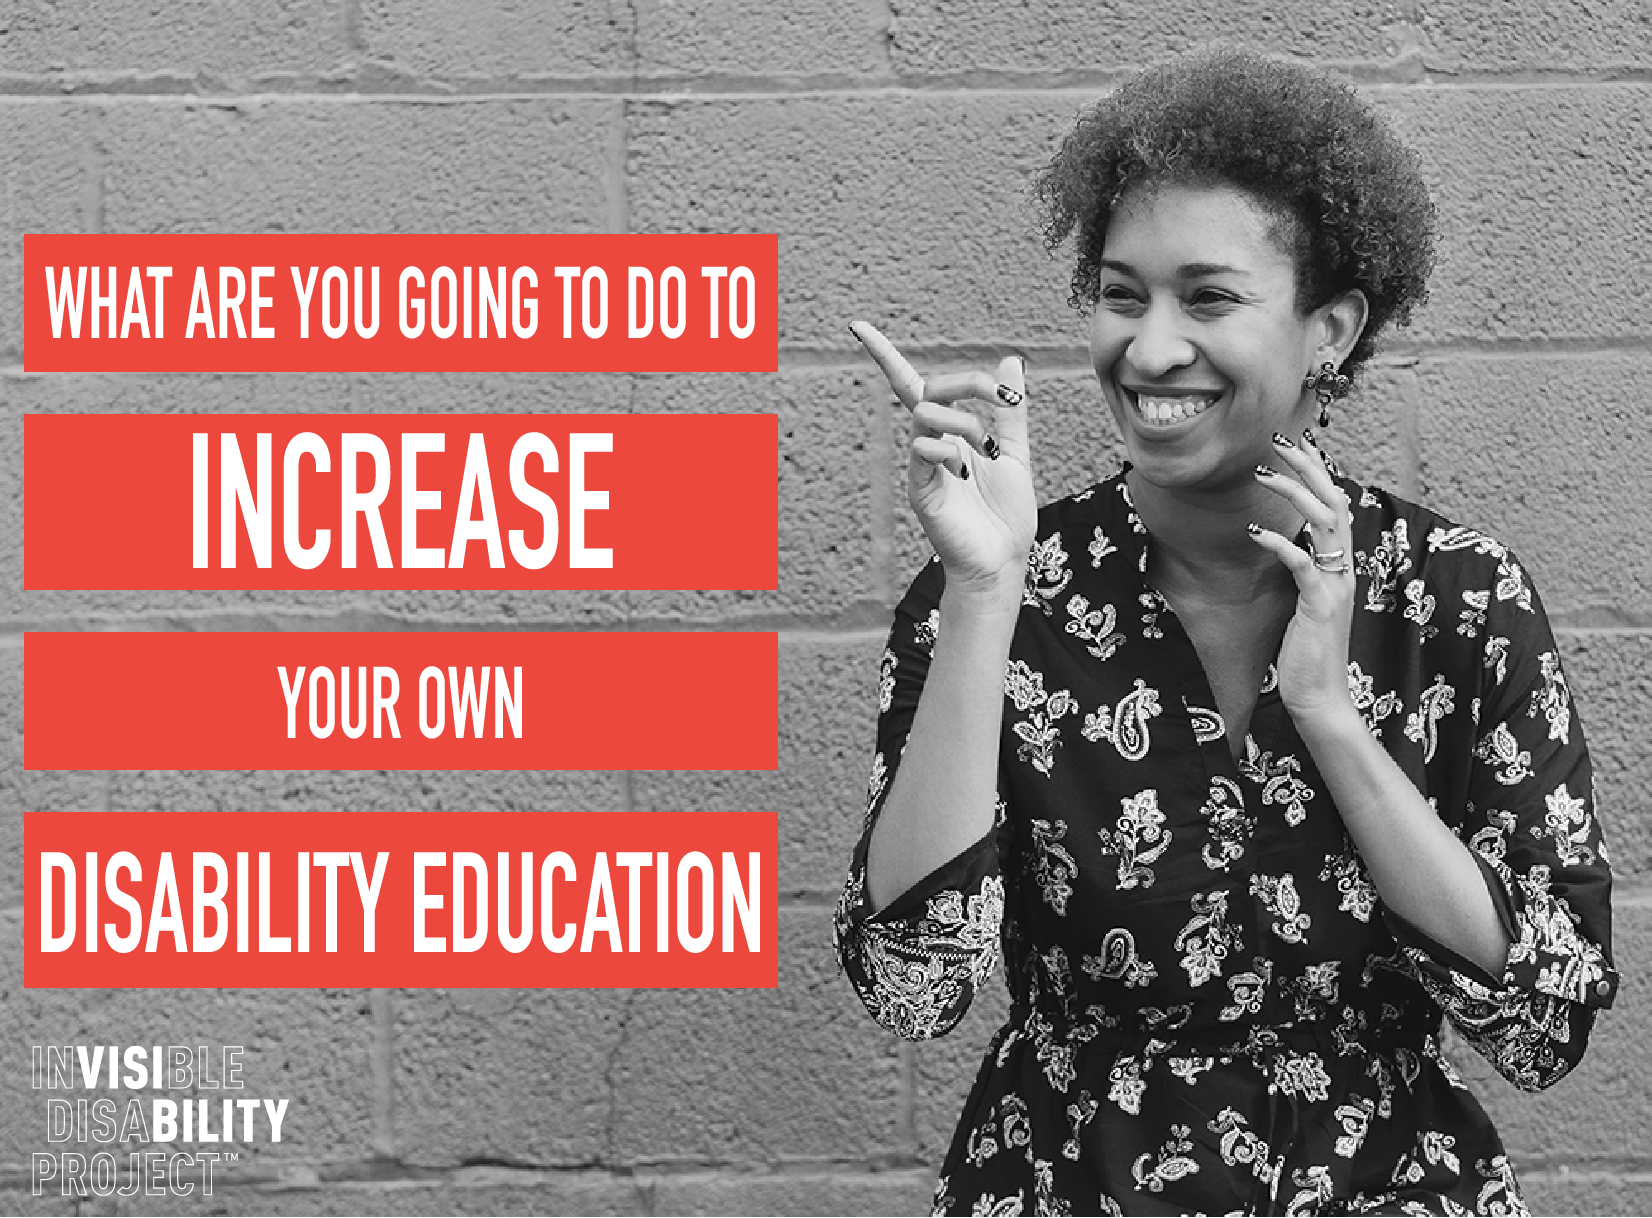 What are you going to do to increase your own disability education?